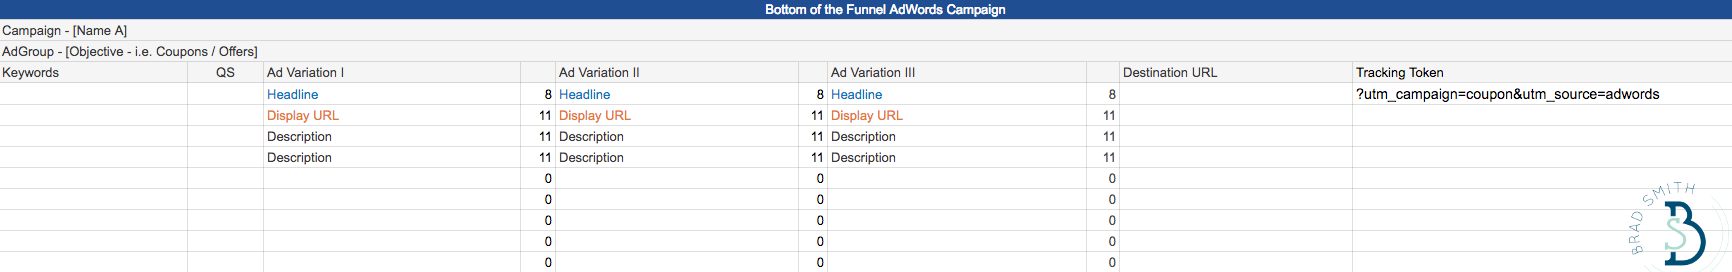 analytics adwords